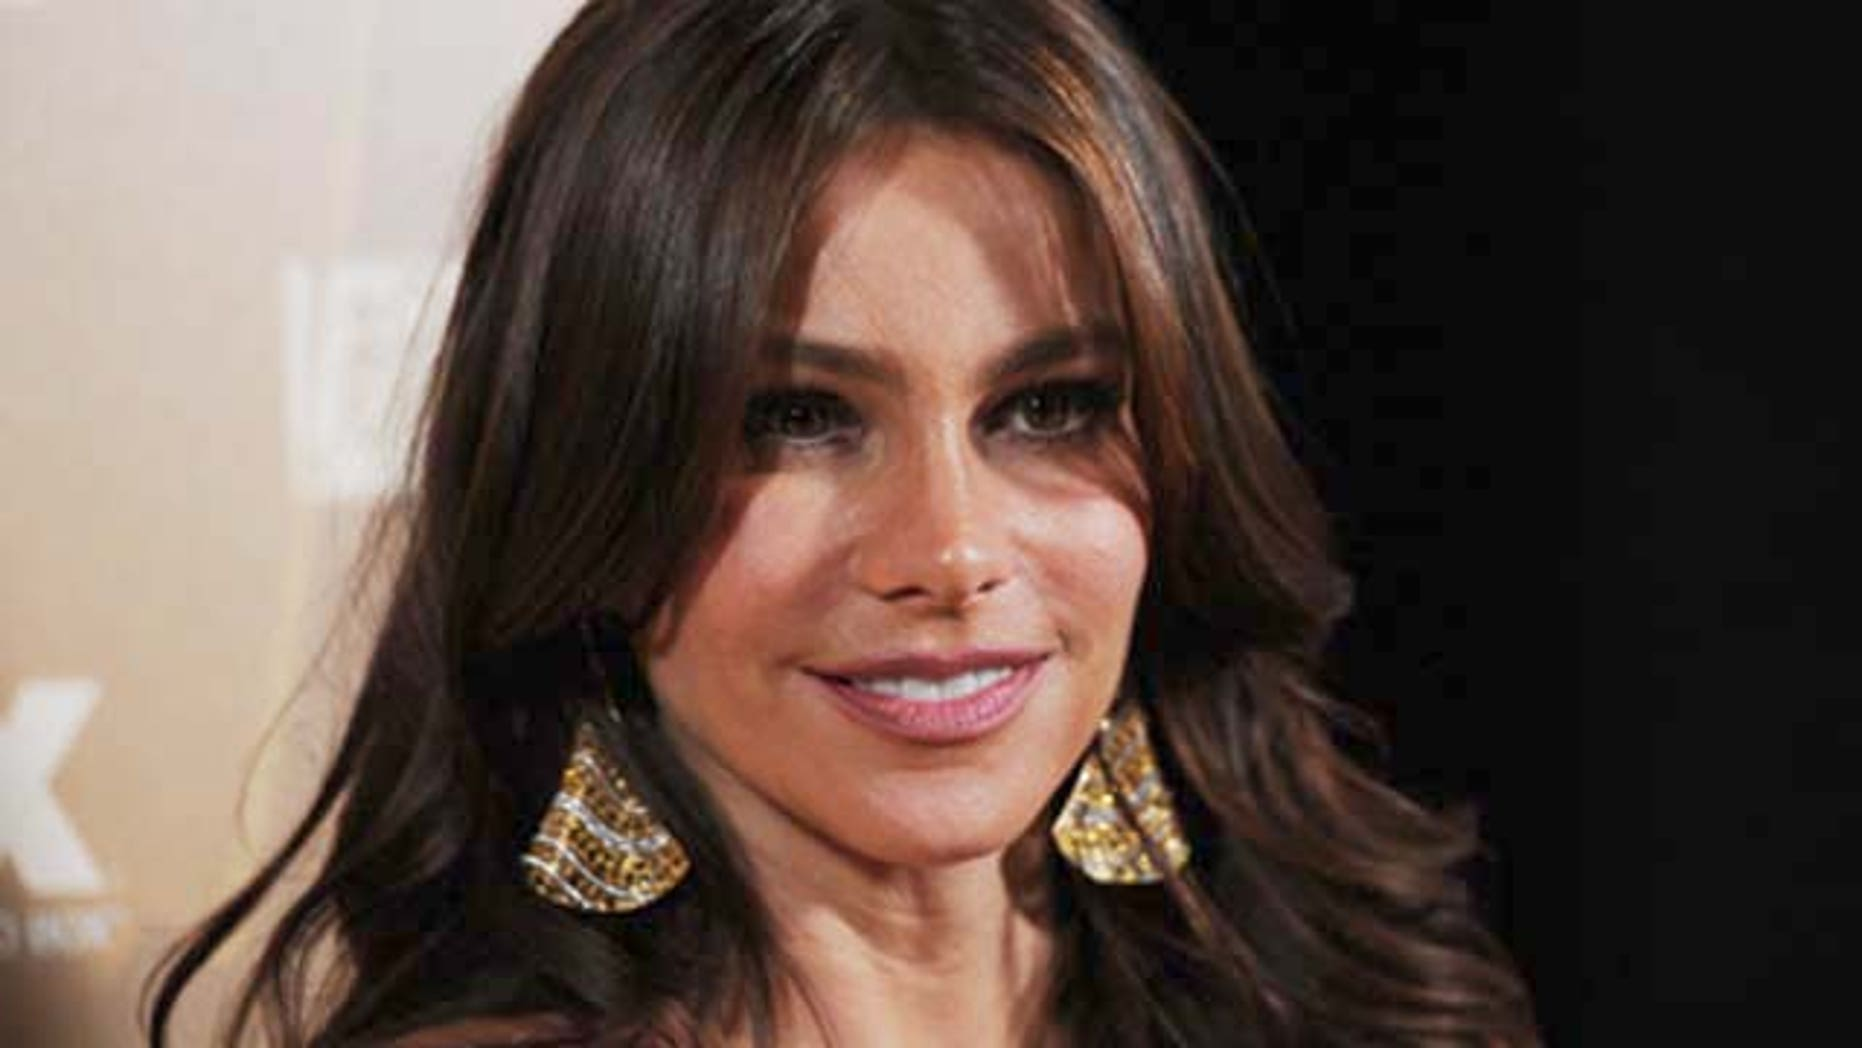 Actress Sofia Vergara's brother, Julio, has been deported. His arrest, in May but made public Thursday, comes after years of arrests for multiple offenses.